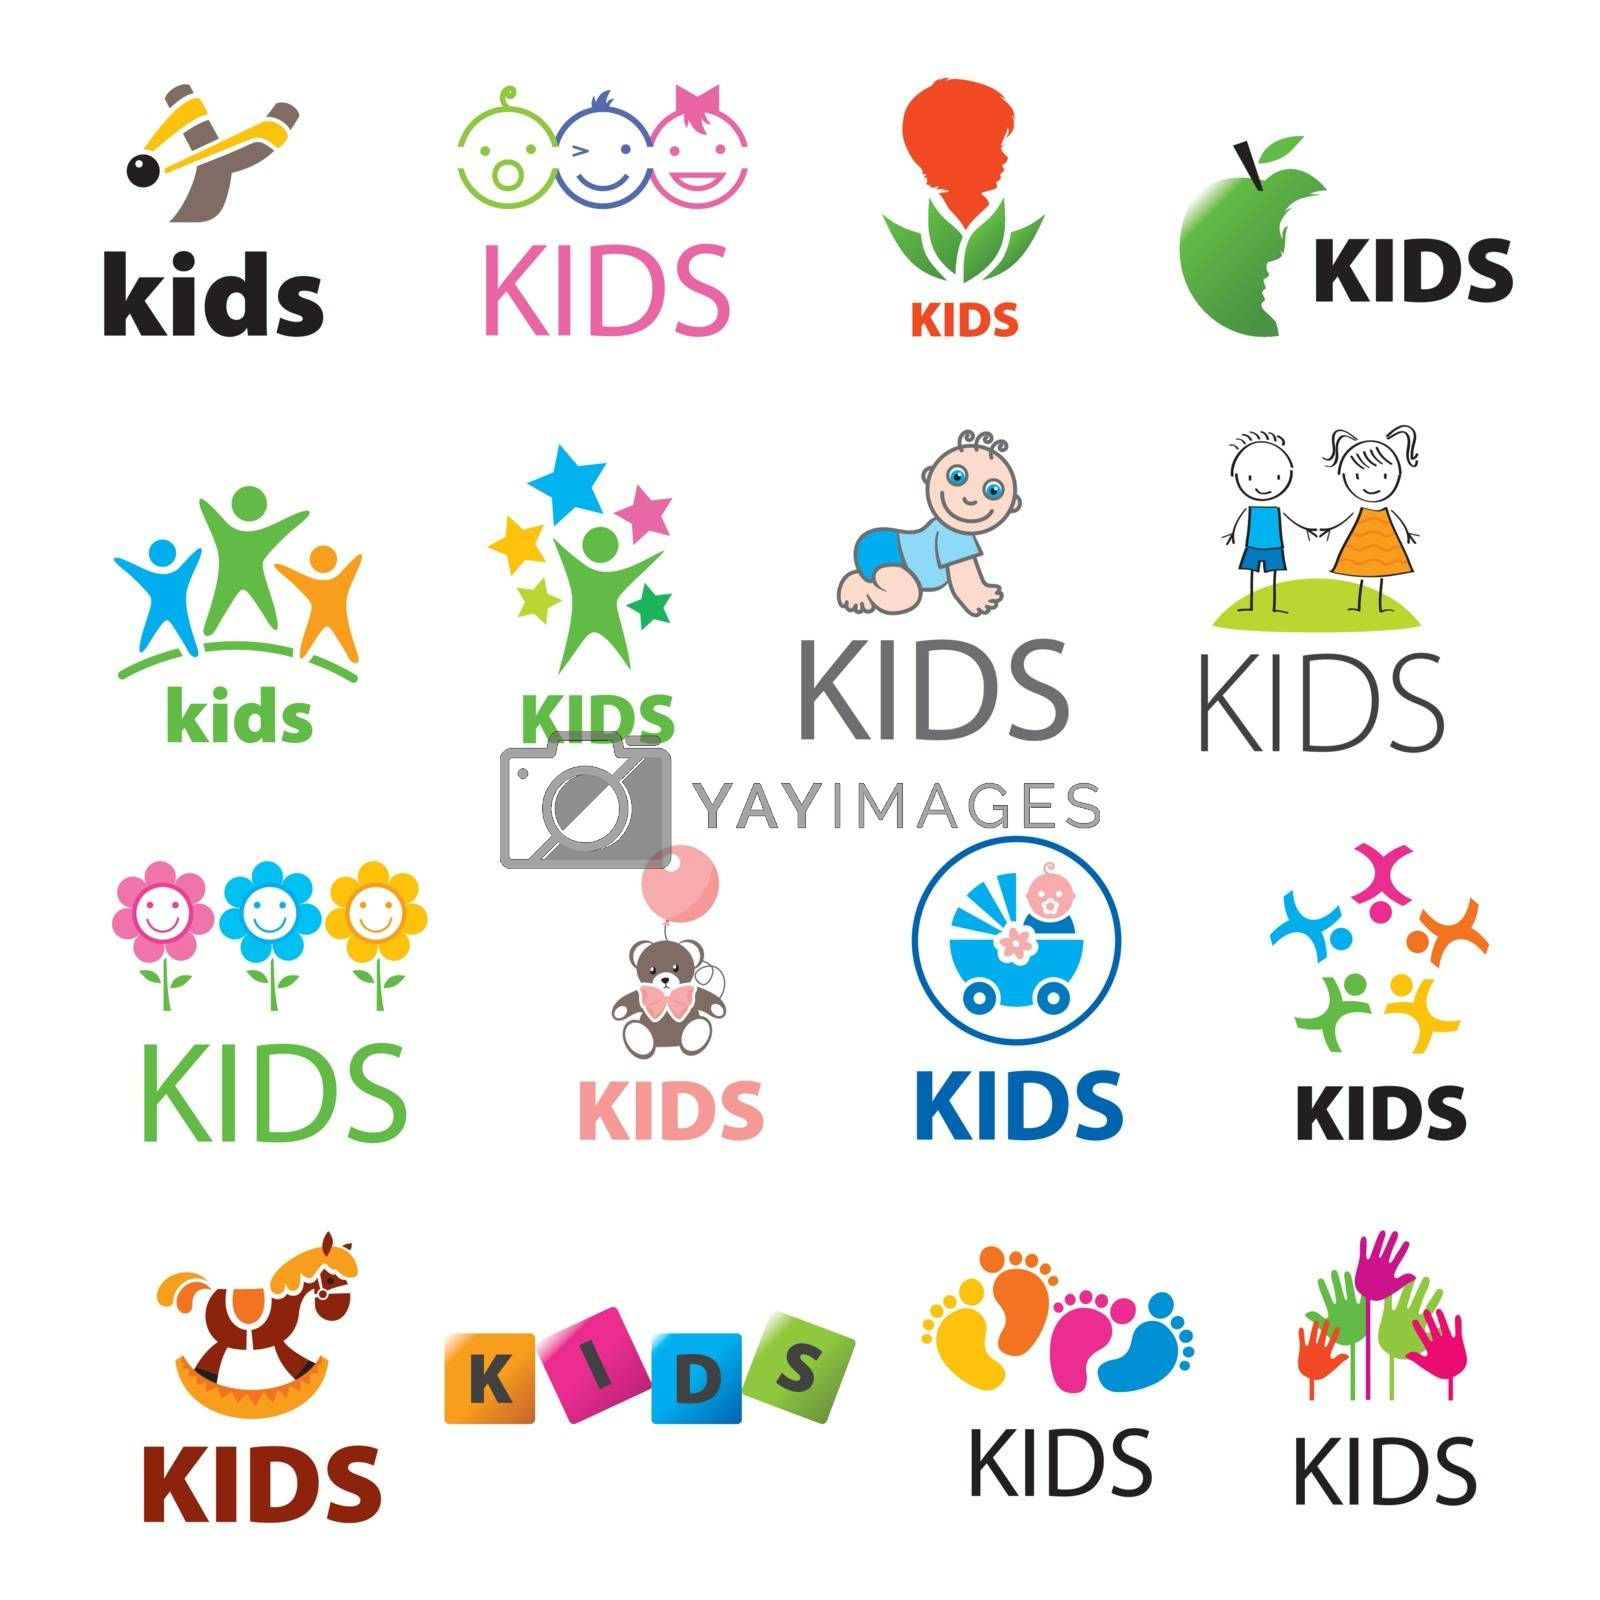 biggest collection of vector logos children by Butenkov